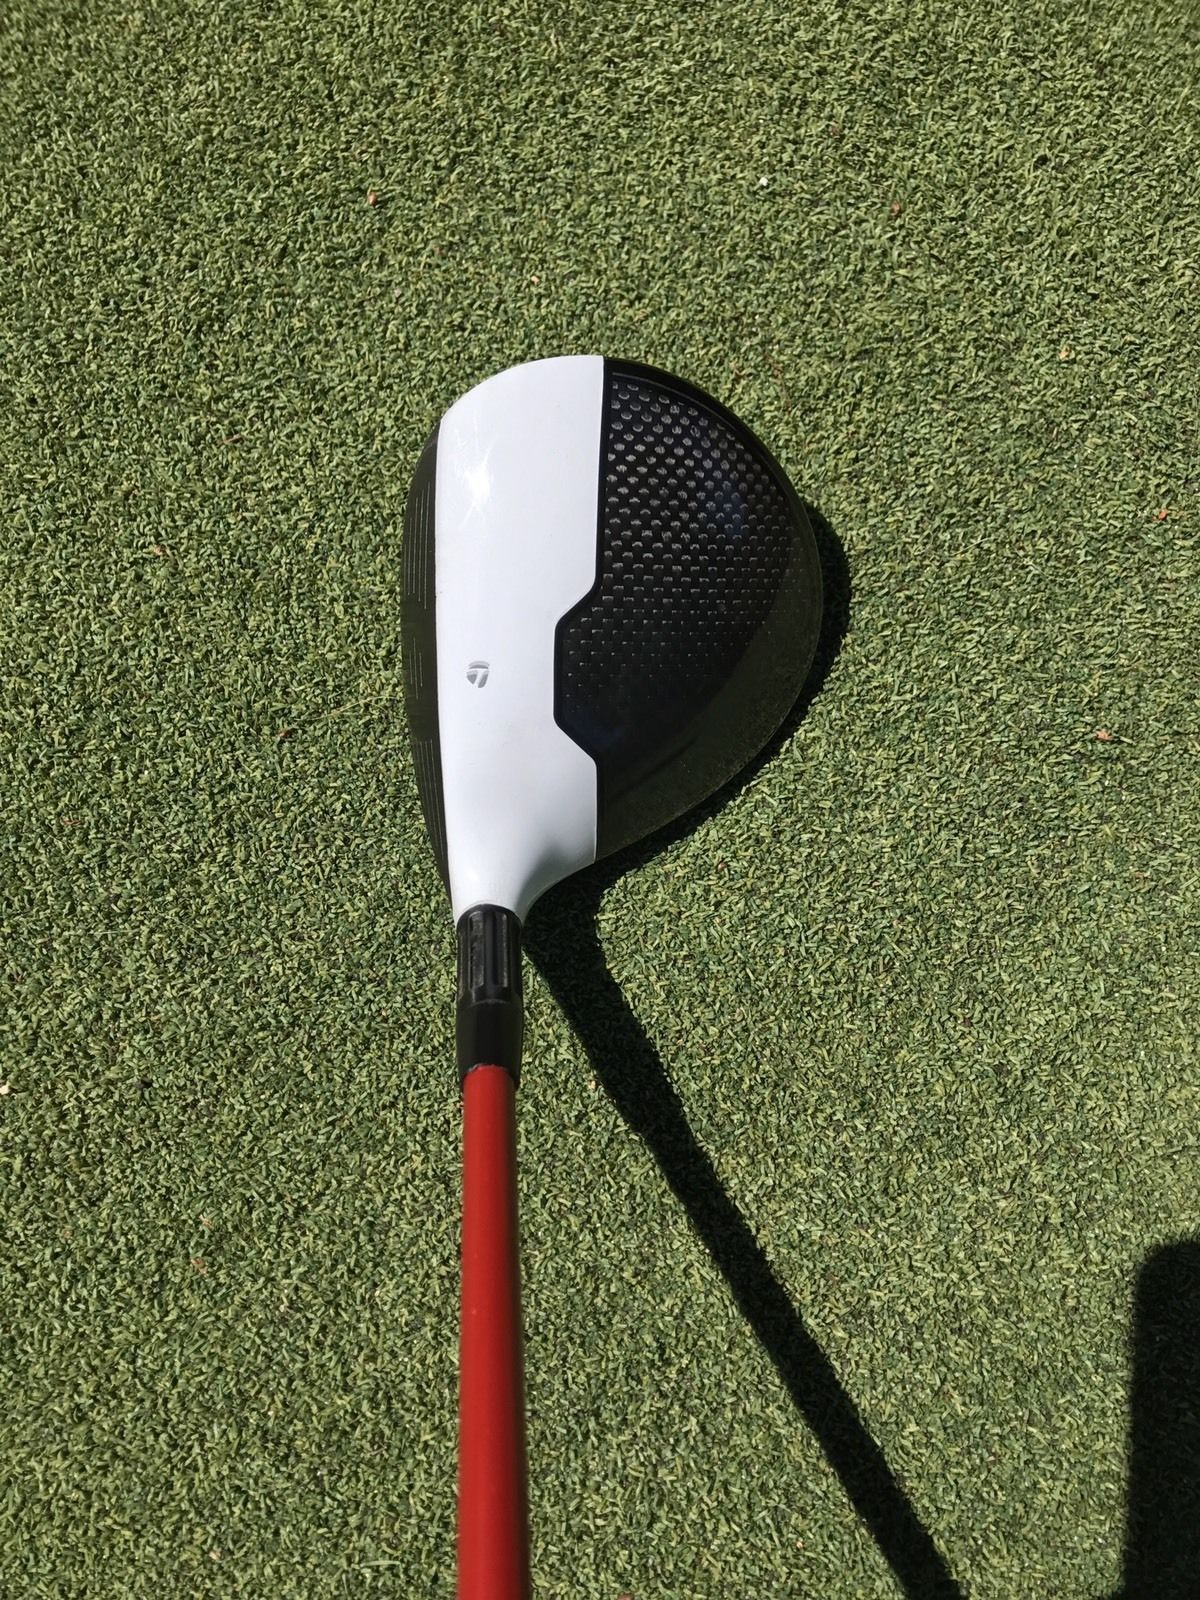 Taylormade M2 3 Wood 15 With Graphite Design Ad Dj 7s